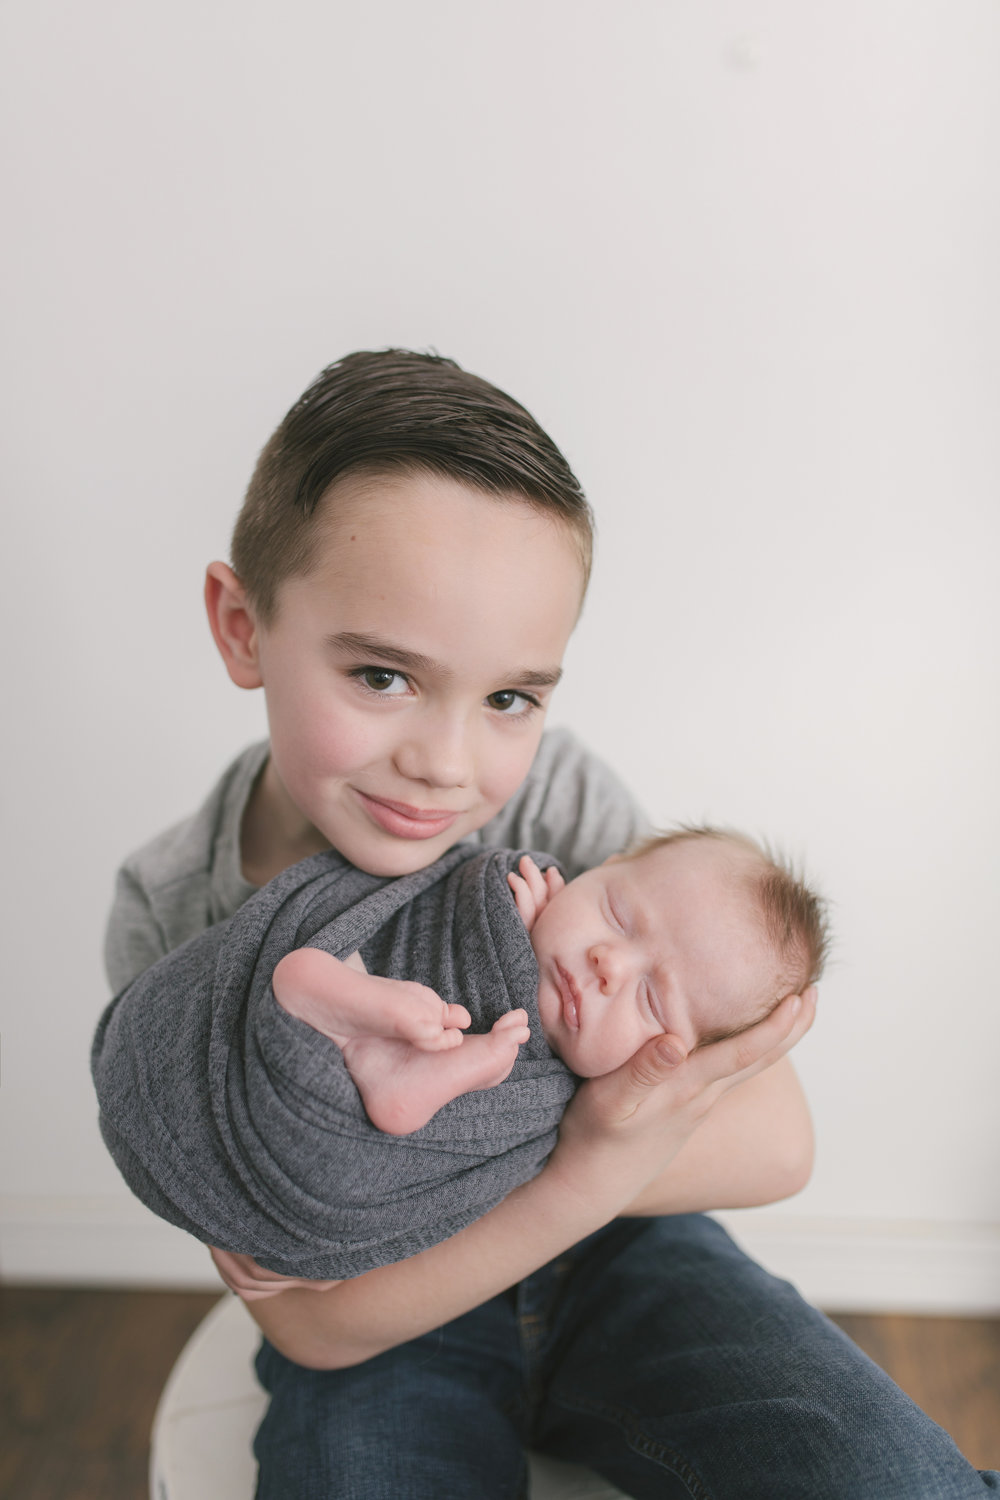 sibling and posed newborn session in niles ohio by warren ohio newborn photographer christie leigh photo (15 of 22).jpg